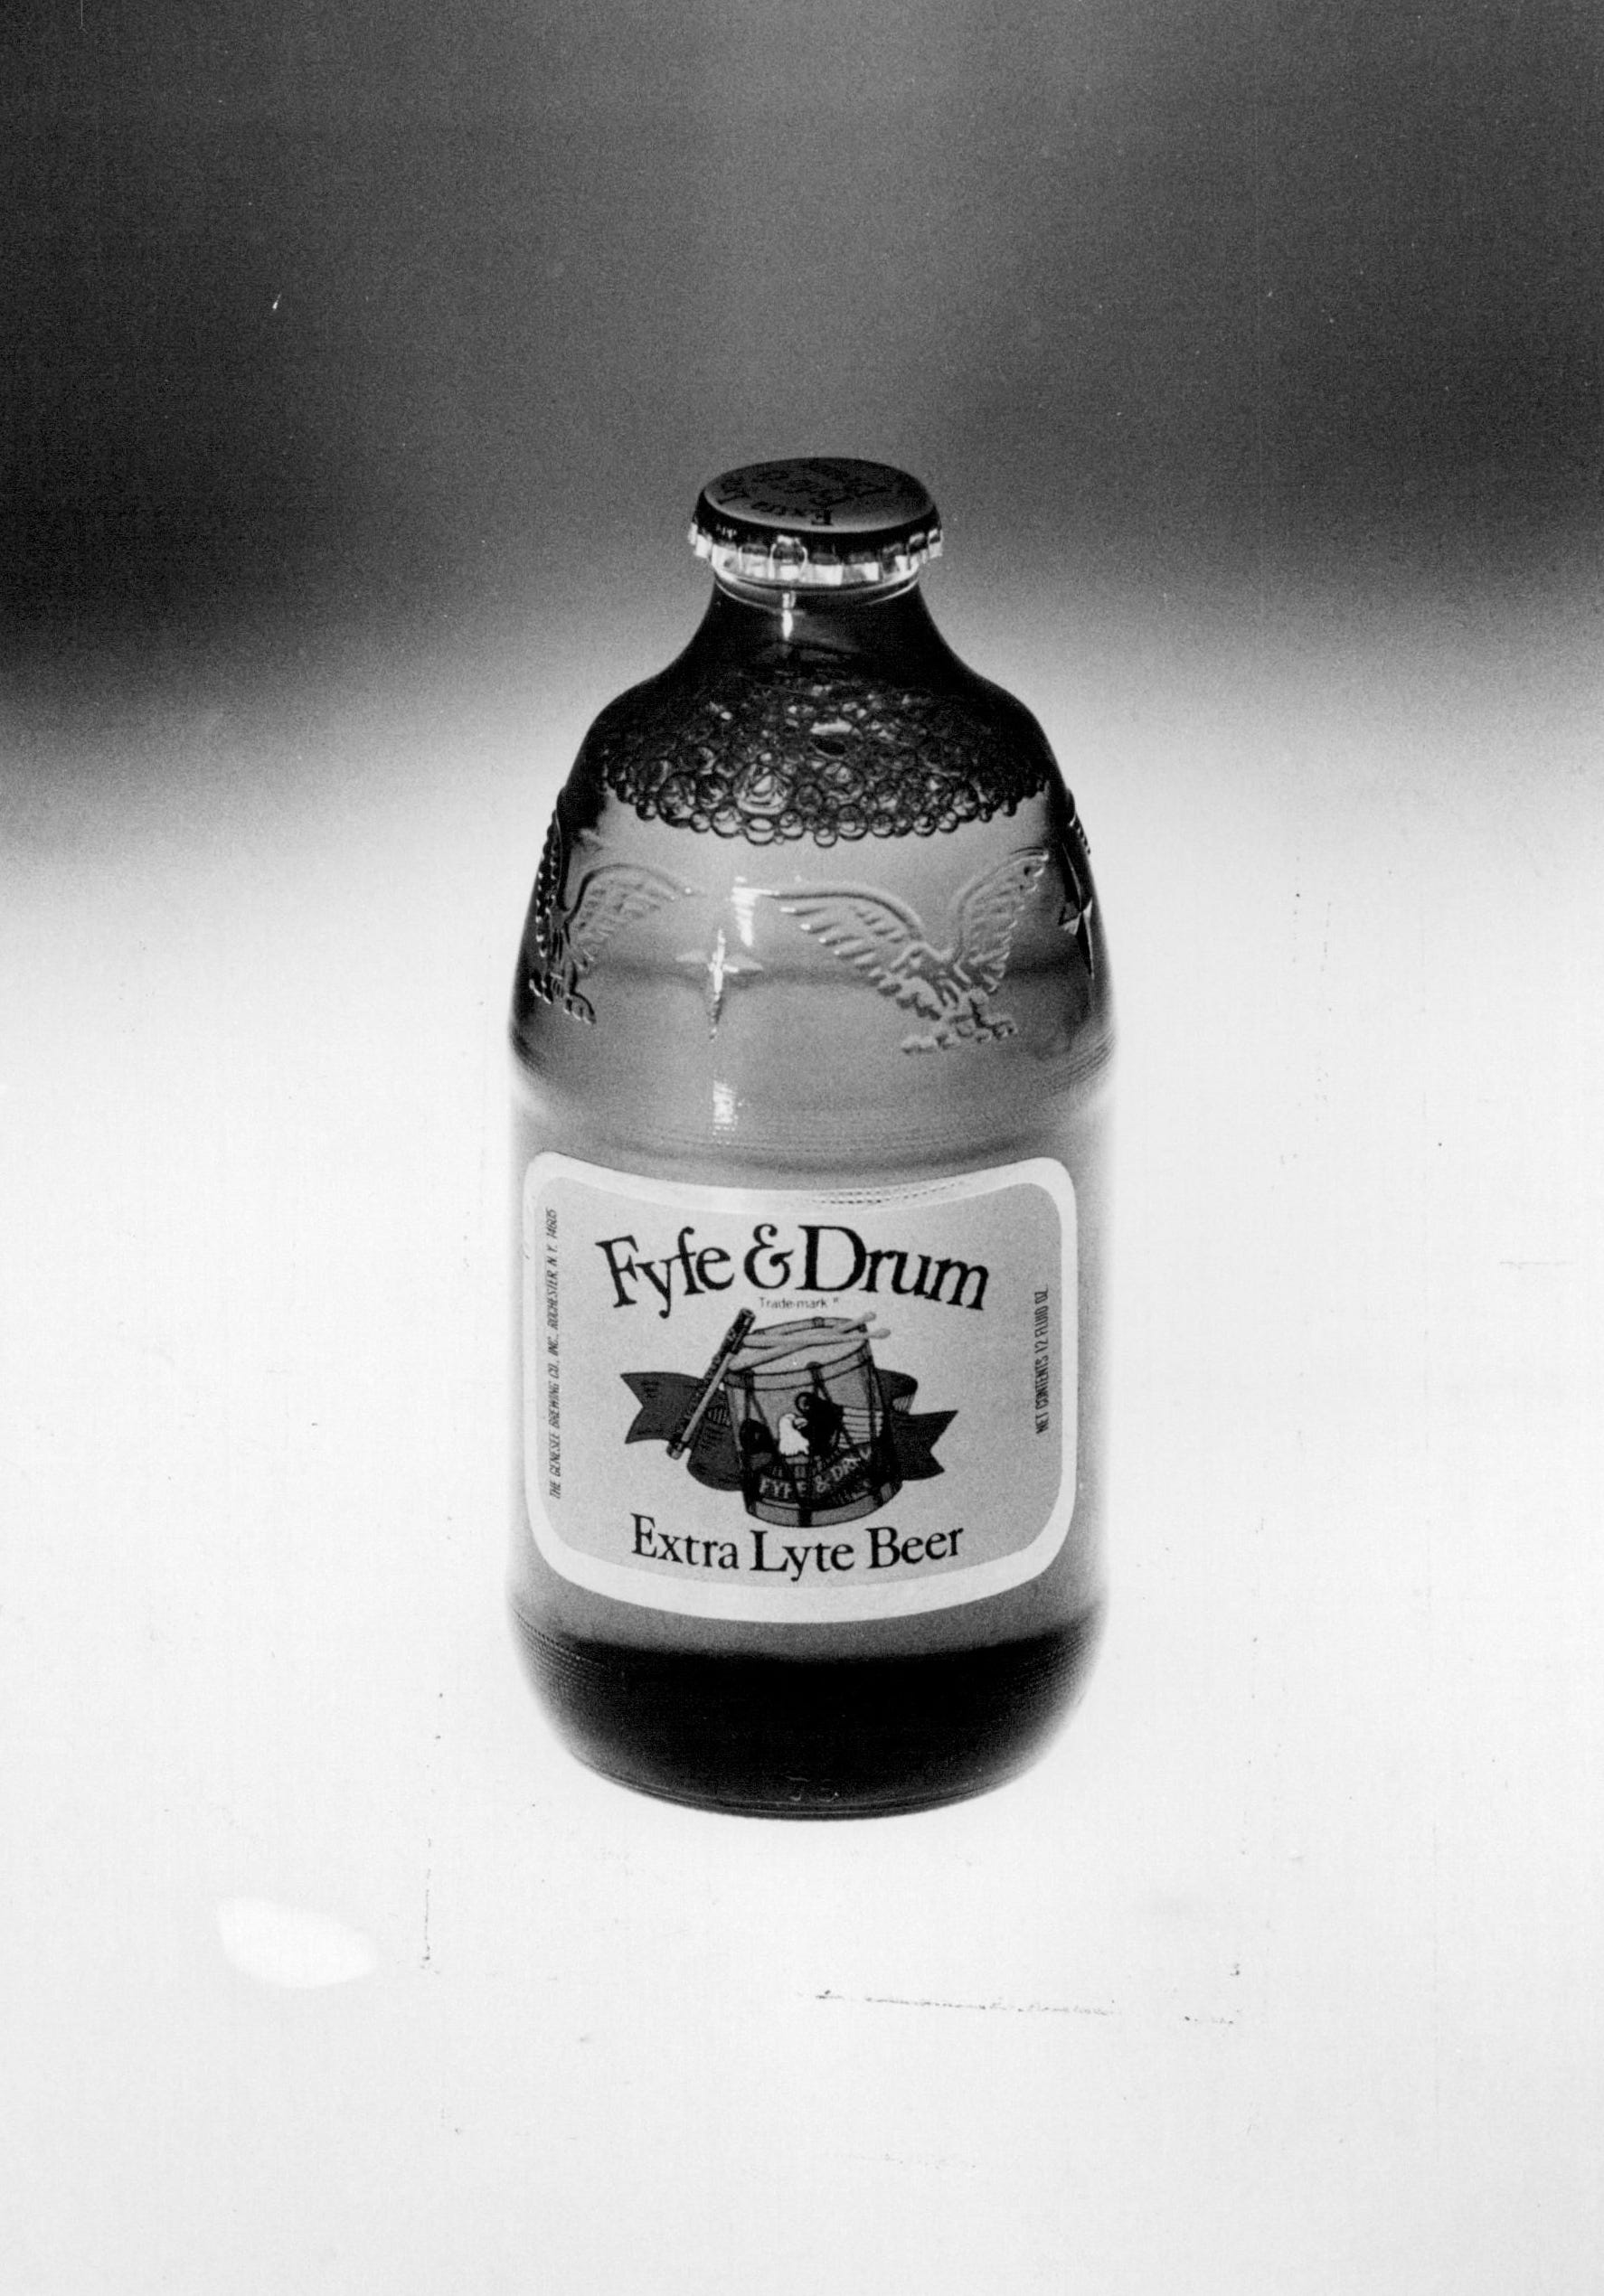 """Genesee introduced Fyfe & Drum, an """"extra lyte beer,"""" in 1965 and discontinued it for the first time in 1980."""